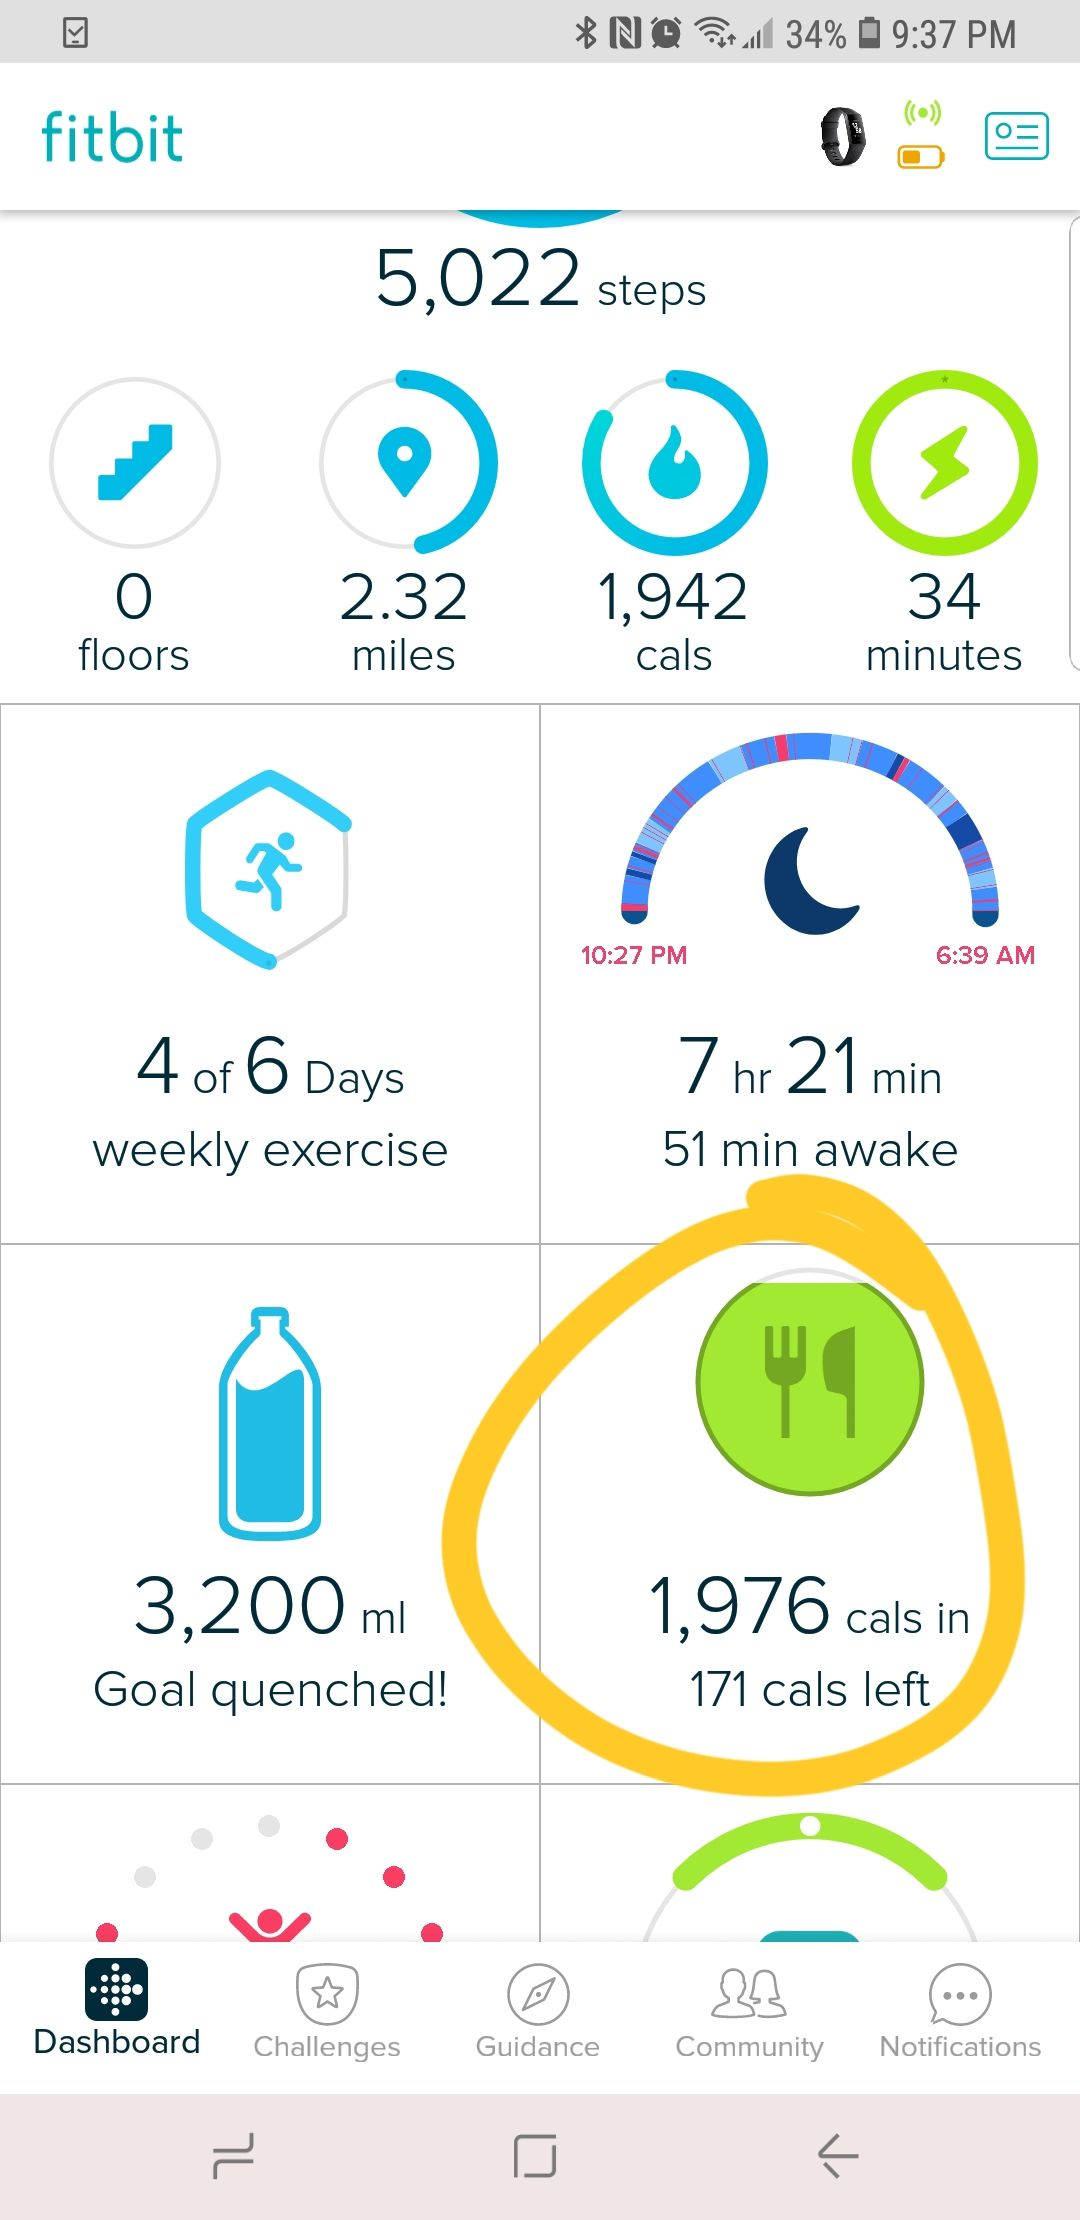 fitbit dashboard weight tracking manual